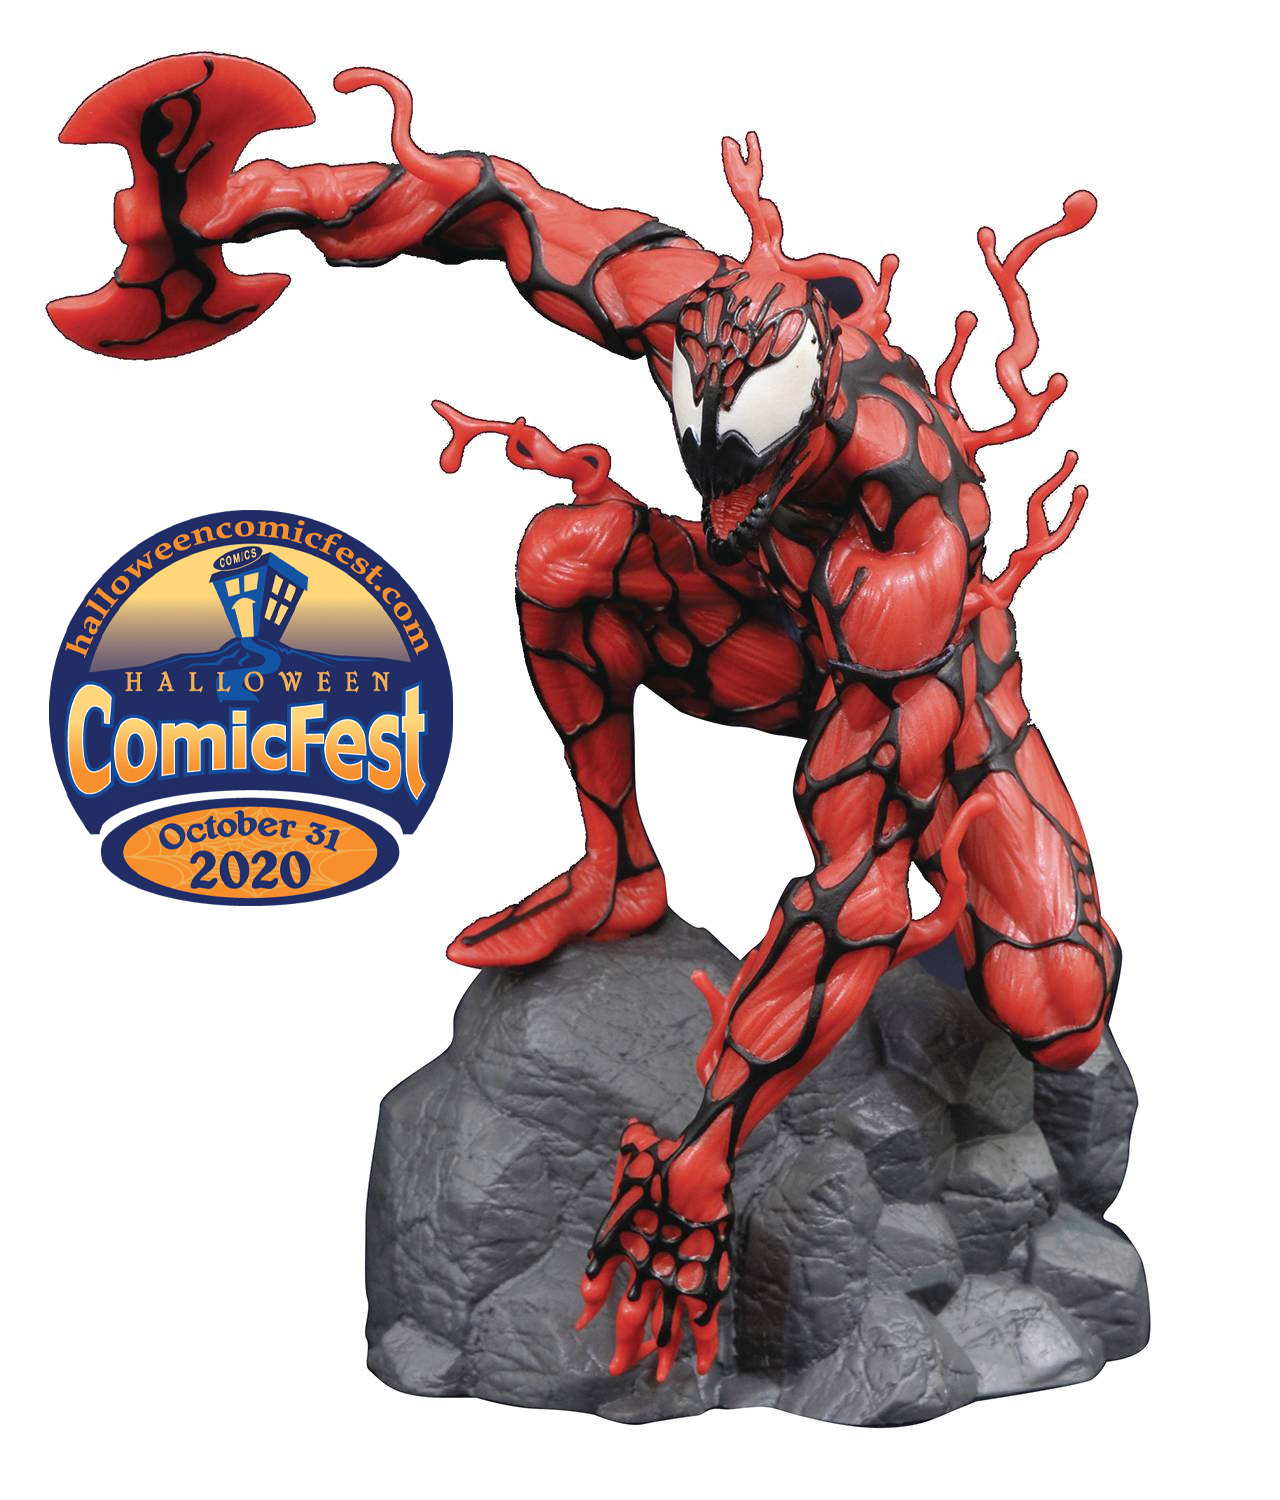 Halloween 2020 Carnage Carnage Glows with Terror for Halloween ComicFest 2020   Previews